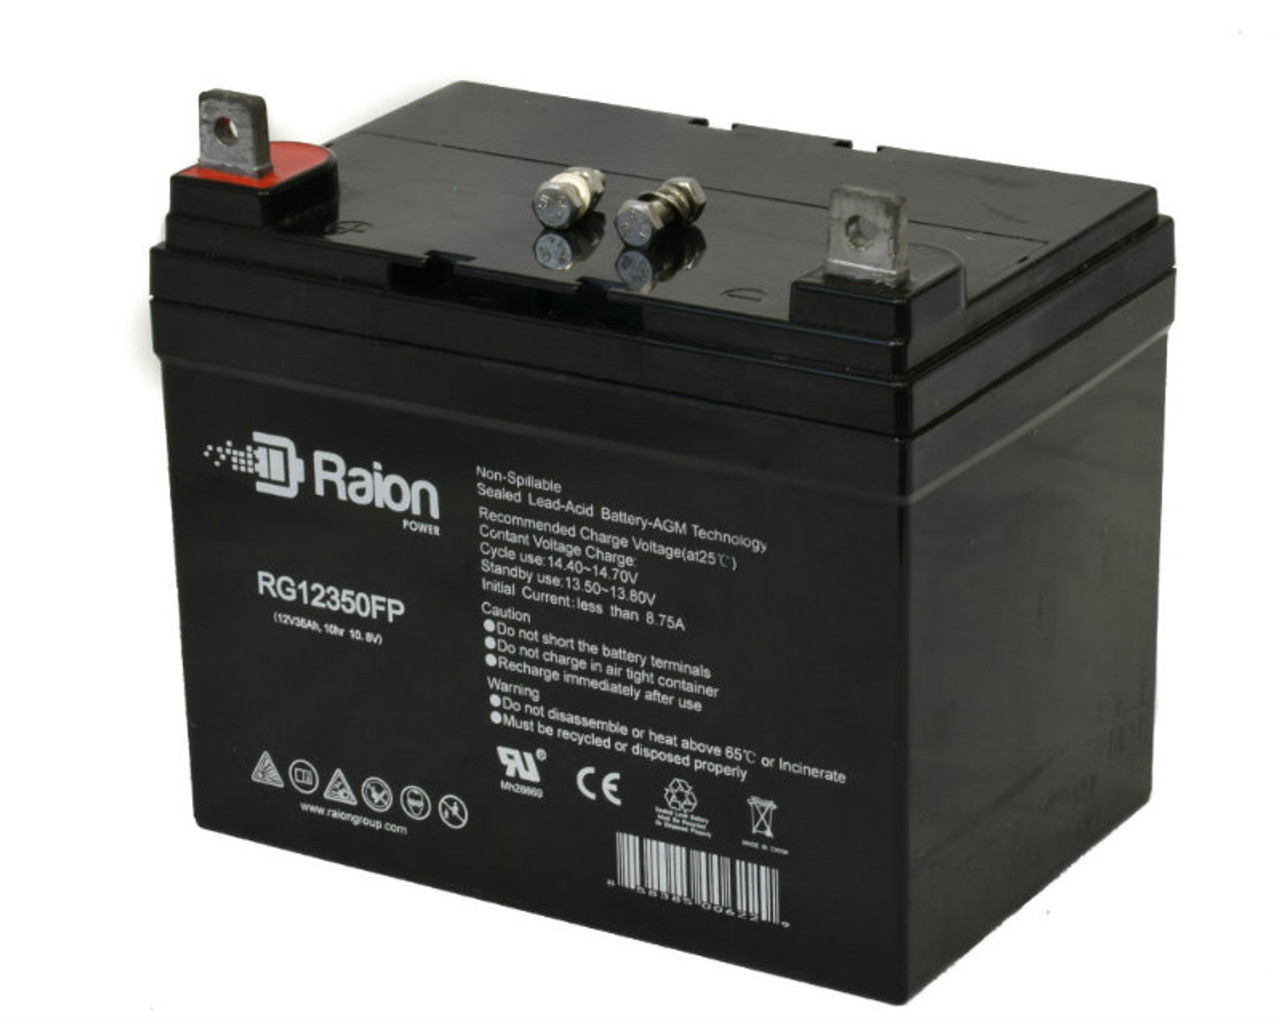 RG12350FP Sealed Lead Acid Battery Pack For Everest & Jennings Pacer Mobility Scooter